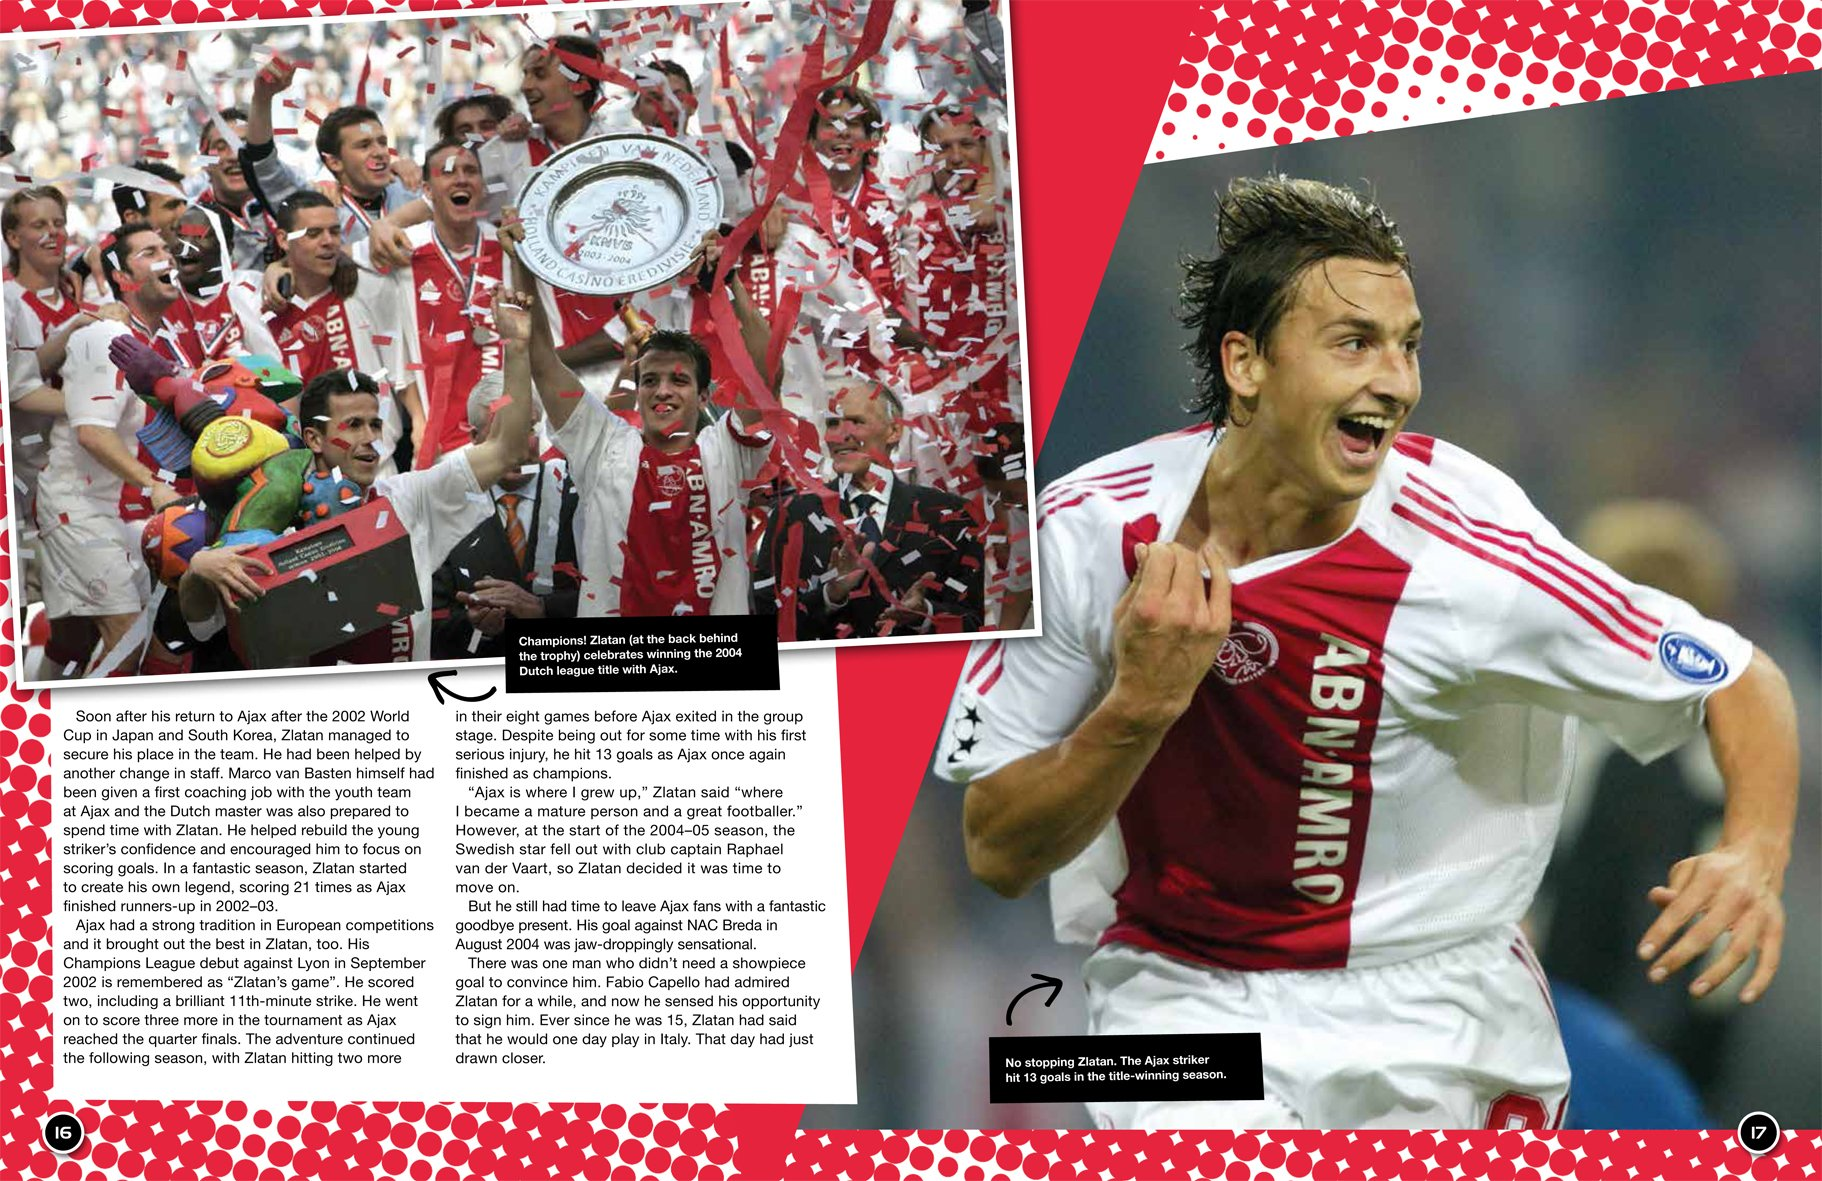 Zlatan Ibrahimovic (The Ultimate Fan Book)